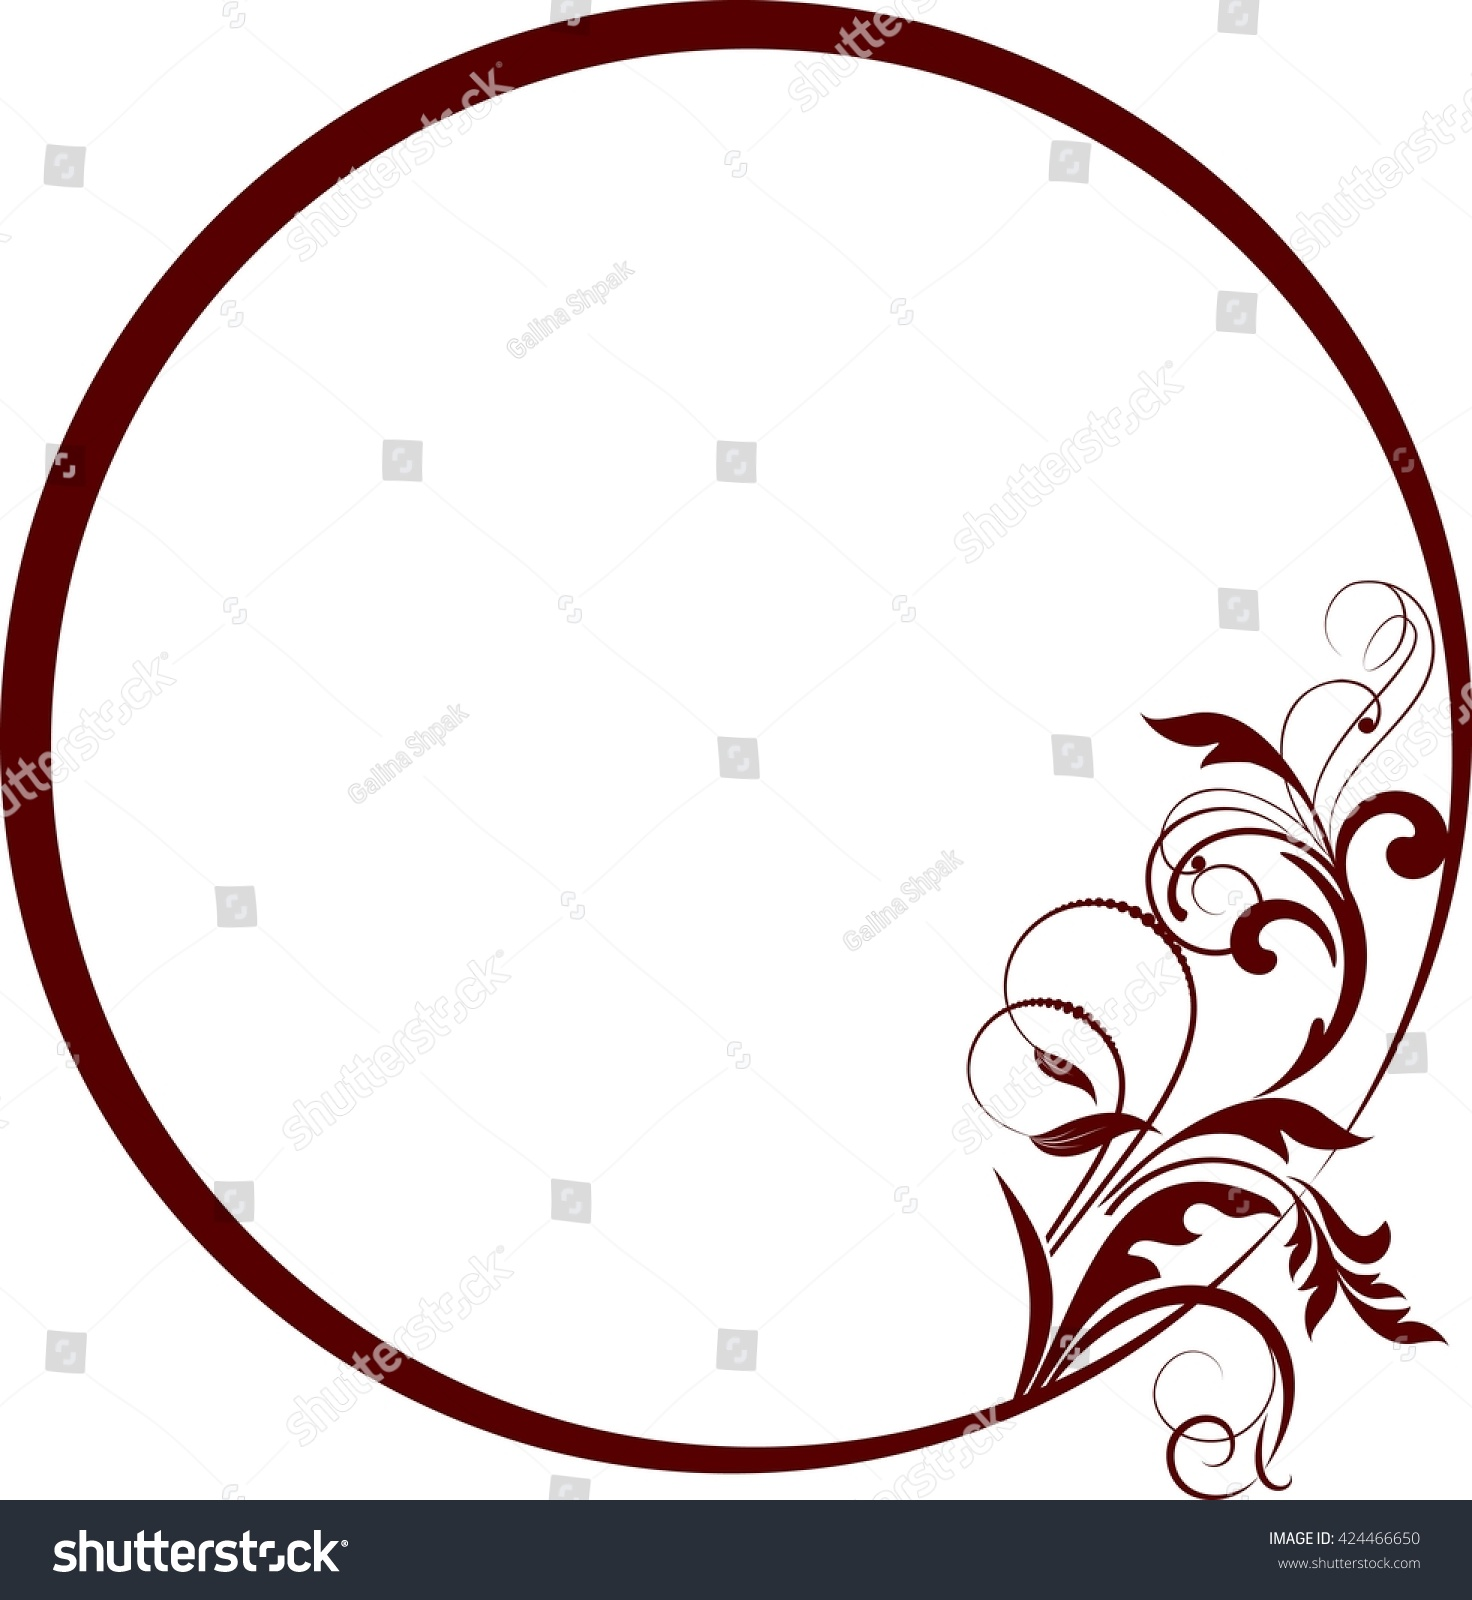 Round frame with decorative branch vector illustration stock - Round Frame With Decorative Branch Vector Illustration Preview Save To A Lightbox